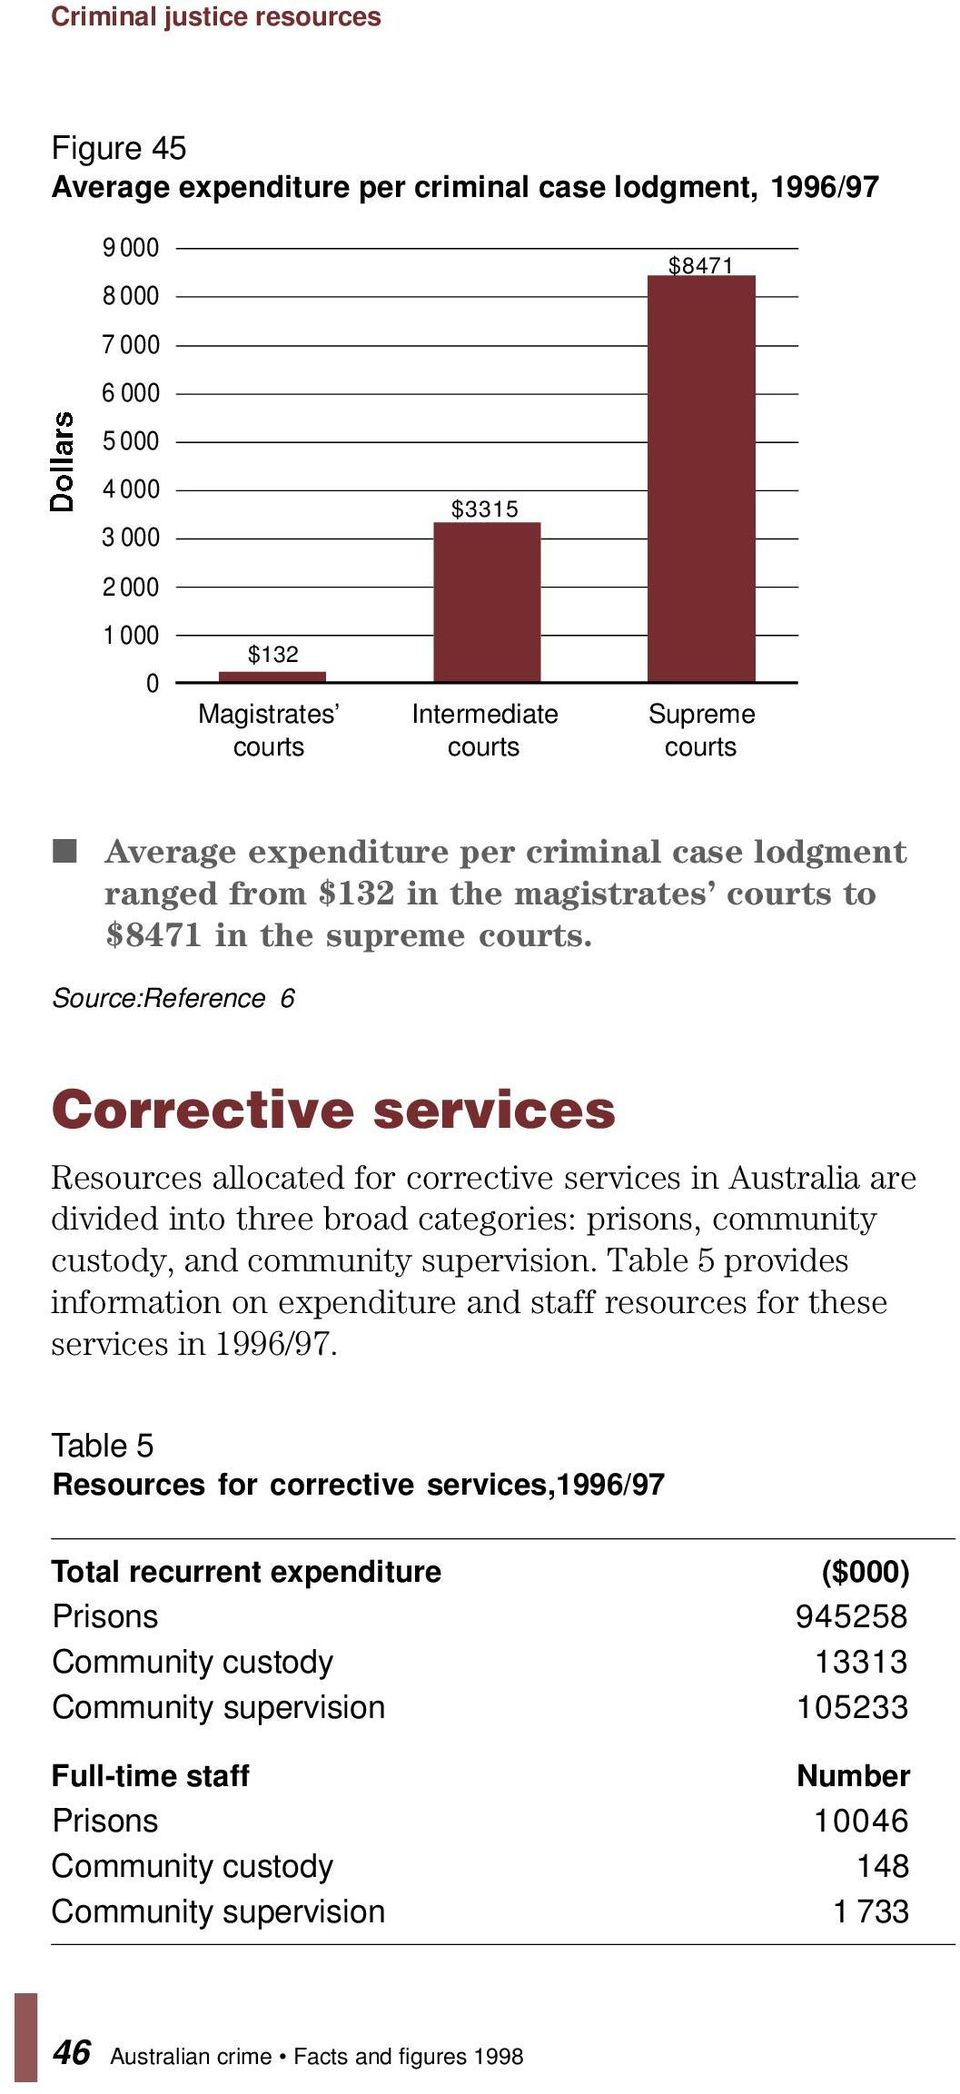 Corrective services Resources allocated for corrective services in Australia are divided into three broad categories: prisons, community custody, and community supervision.